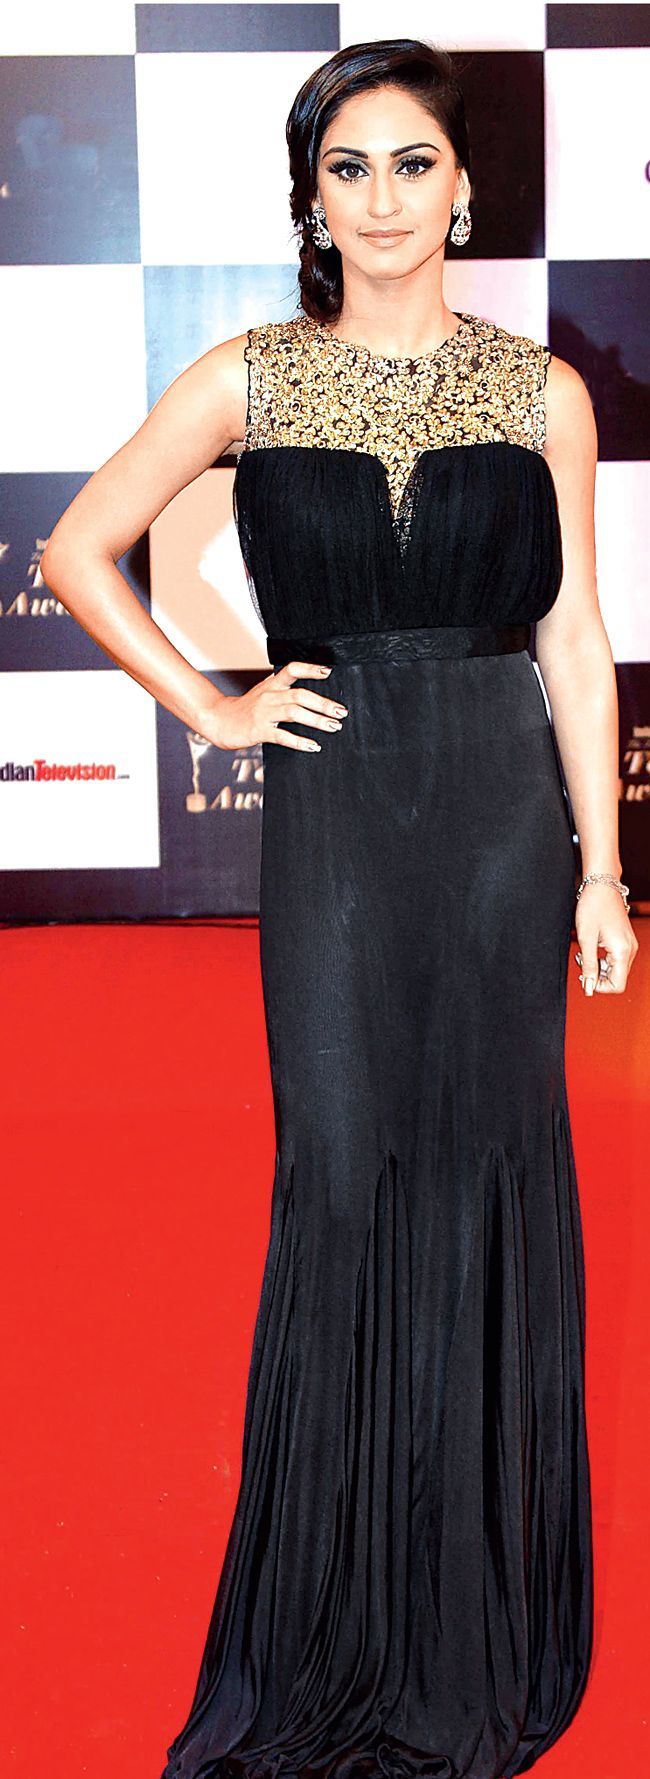 Krystle D'Souza on the red carpet of 13th Indian Telly Awards. #Bollywood #Fashion #Style #Beauty